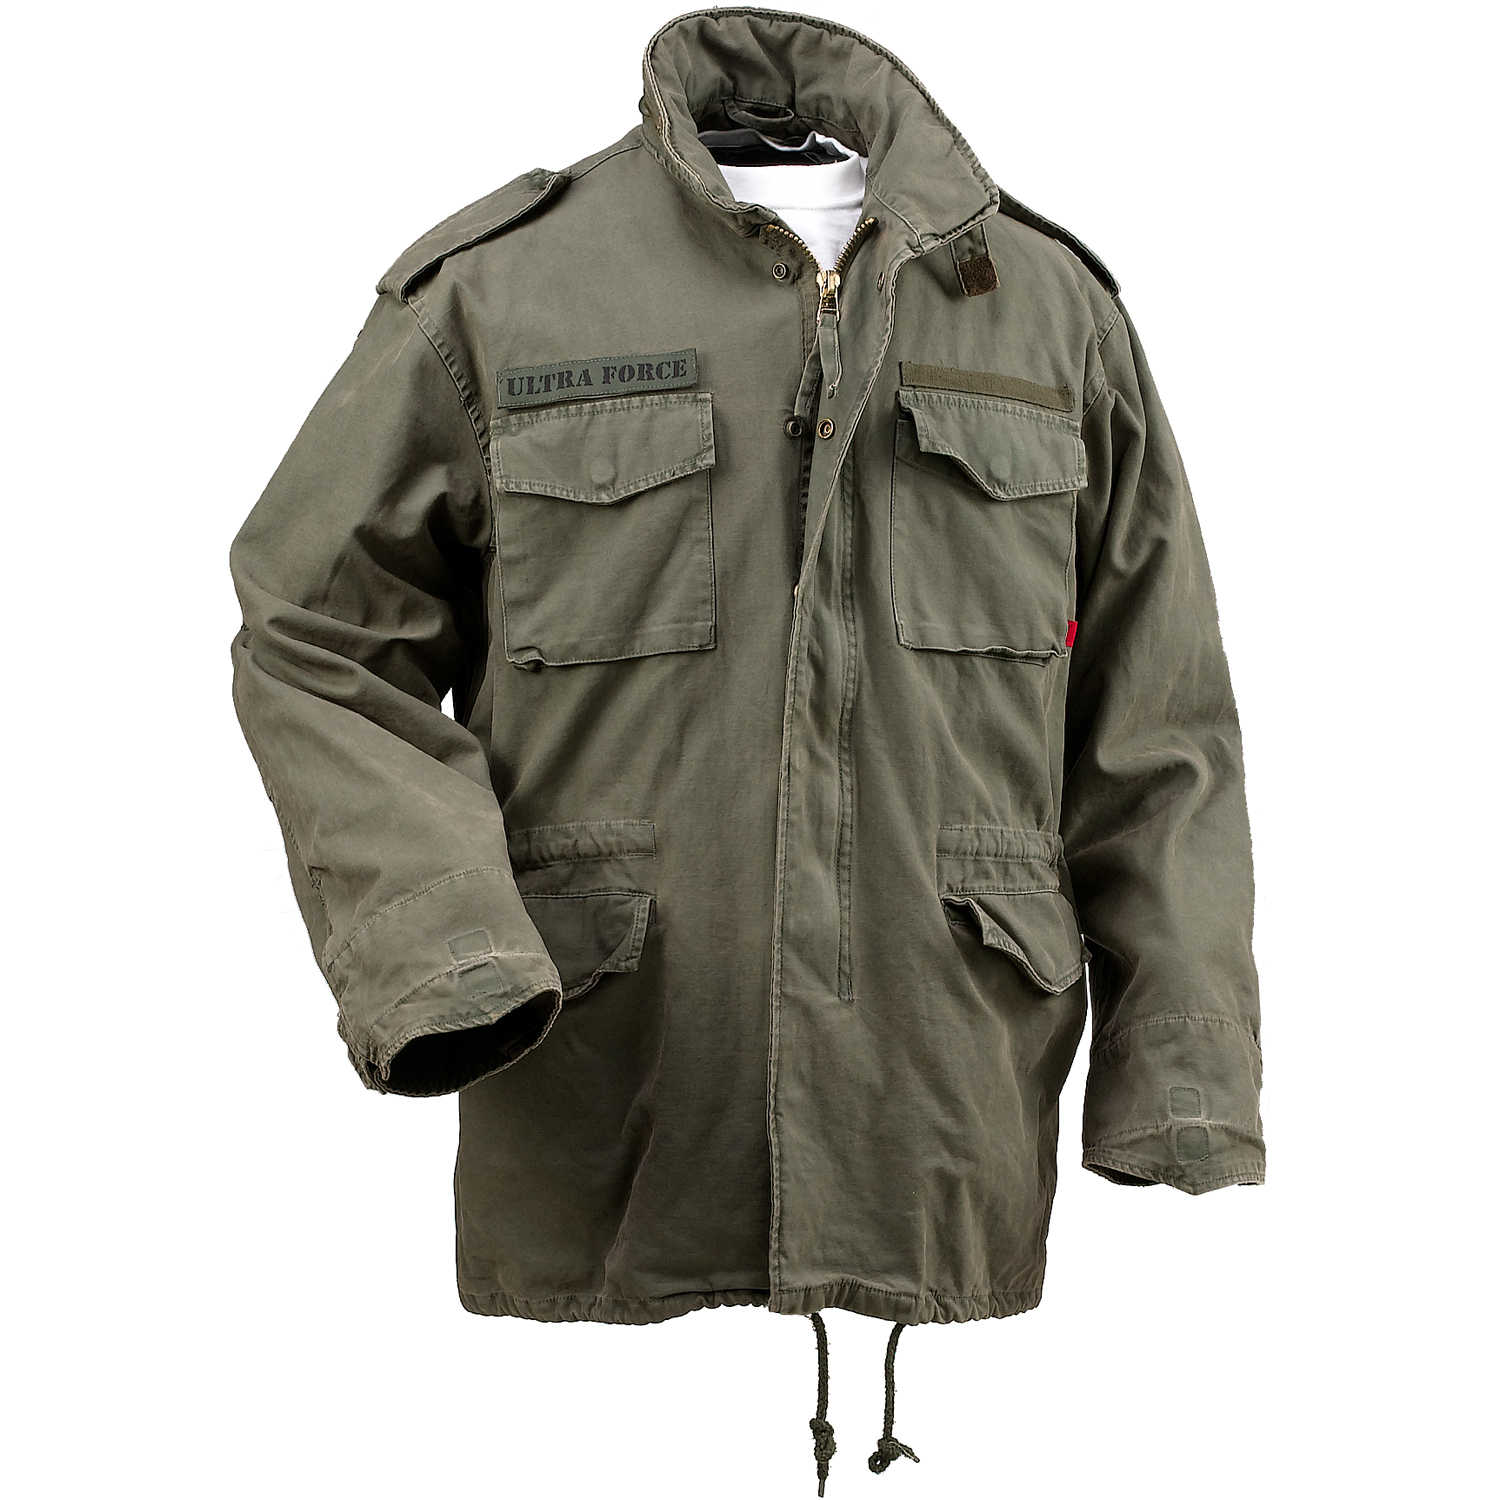 Field jacket olive drab